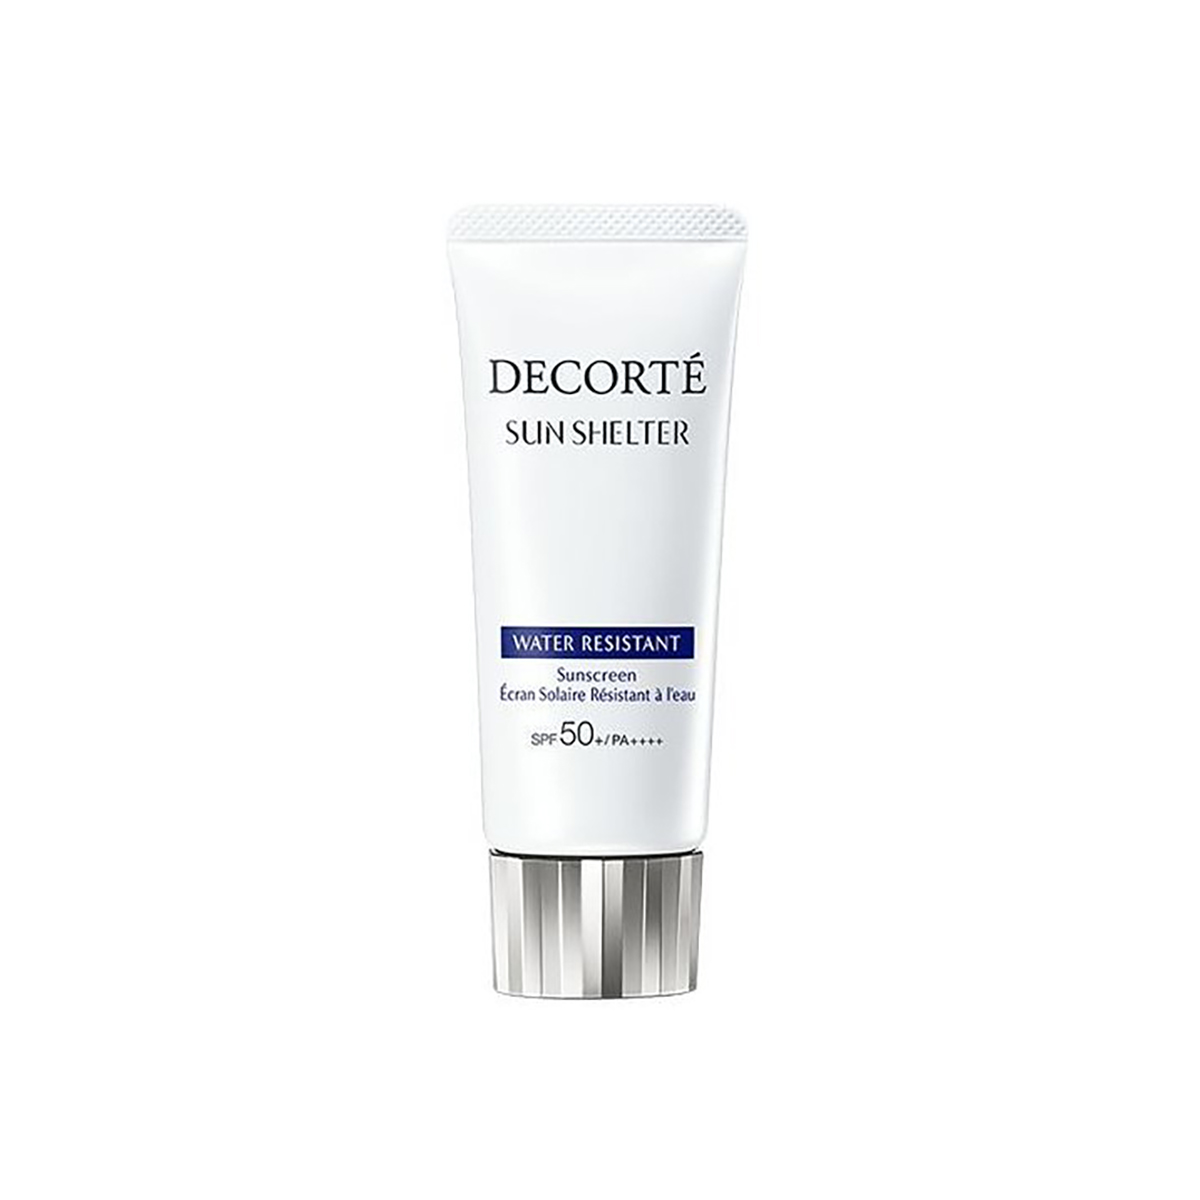 Buy COSME DECORTE Sun Shelter Water Resistant Multi Protection SPF50+ Pa ++++ Sunscreen 35g  [Ship from SG / 100% Authentic] Singapore